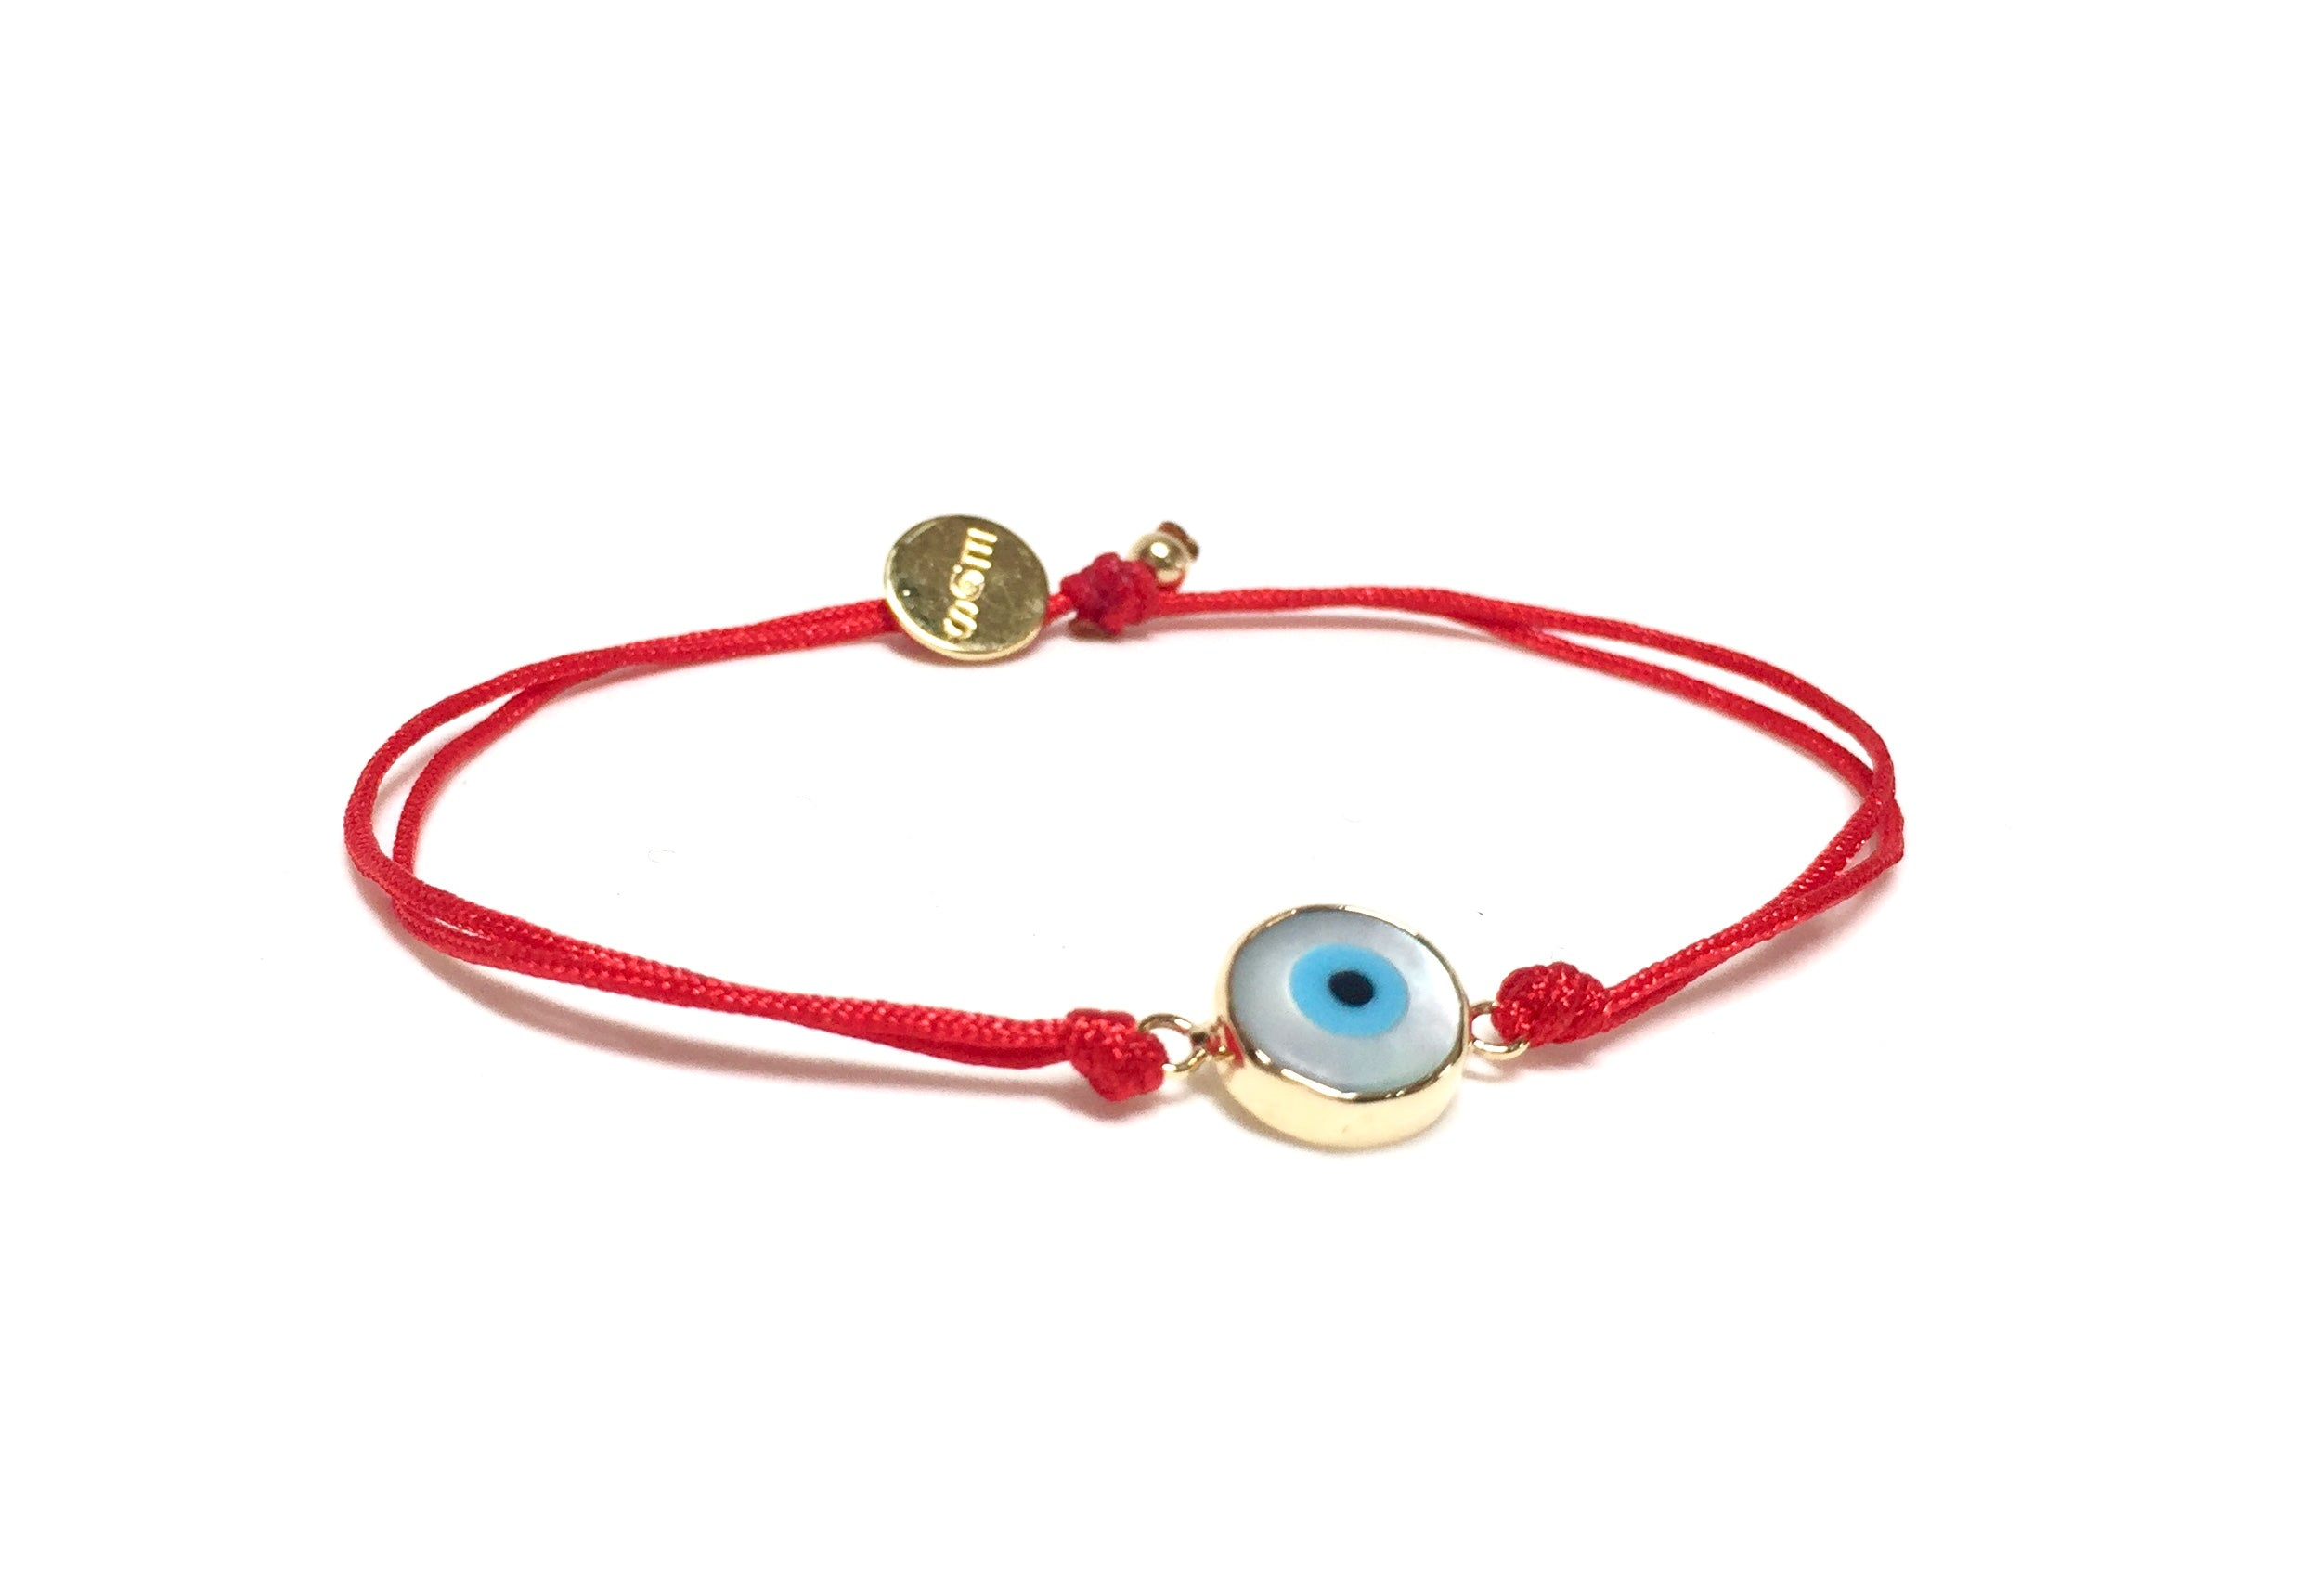 eye men bracelets for string bracelet anklets women evil protection anklet boho pin beach jewelry ankle surfer